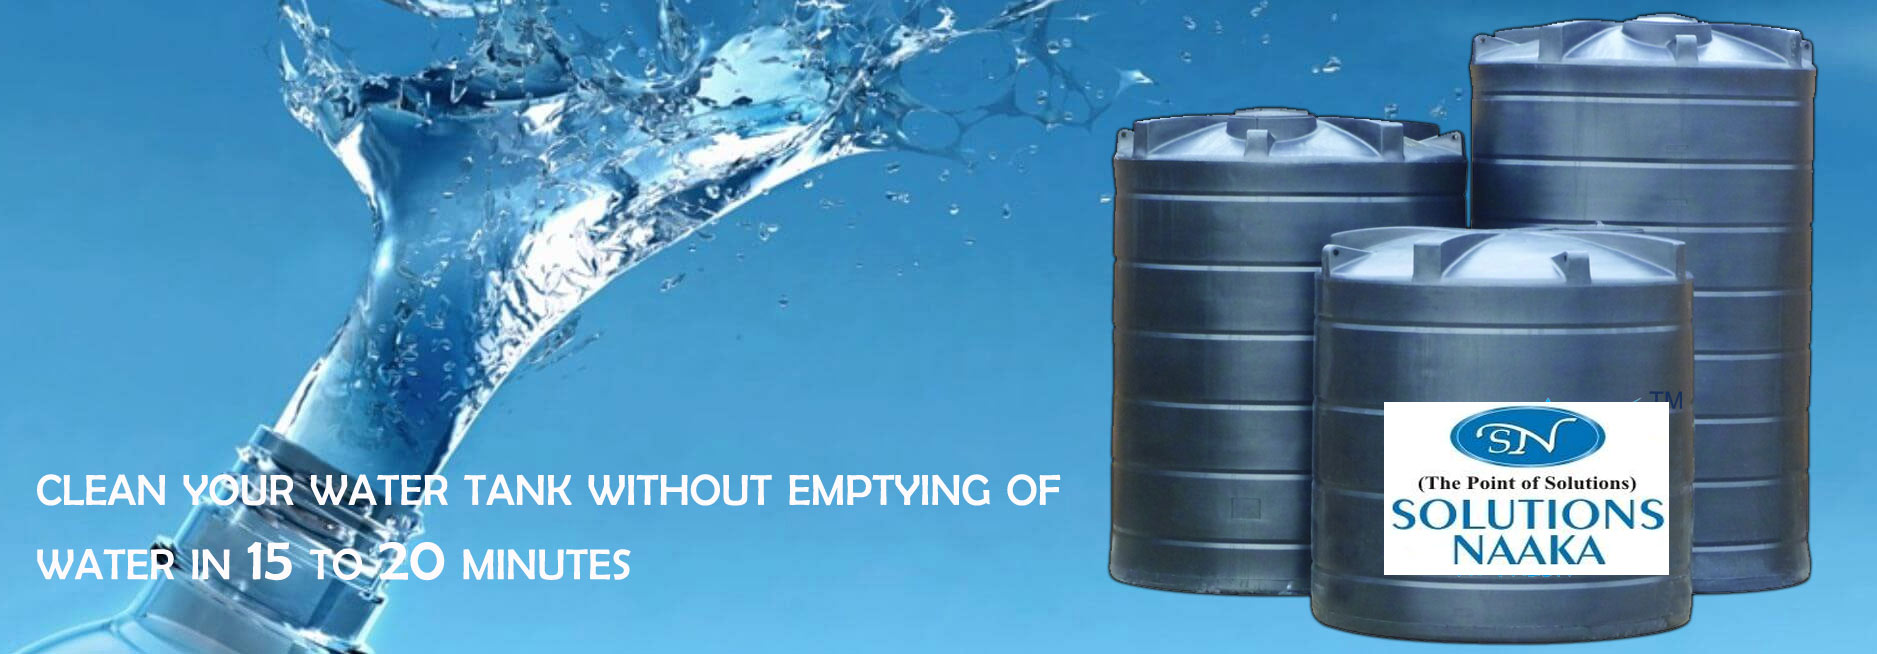 Water Tank Cleaning Services in Delhi